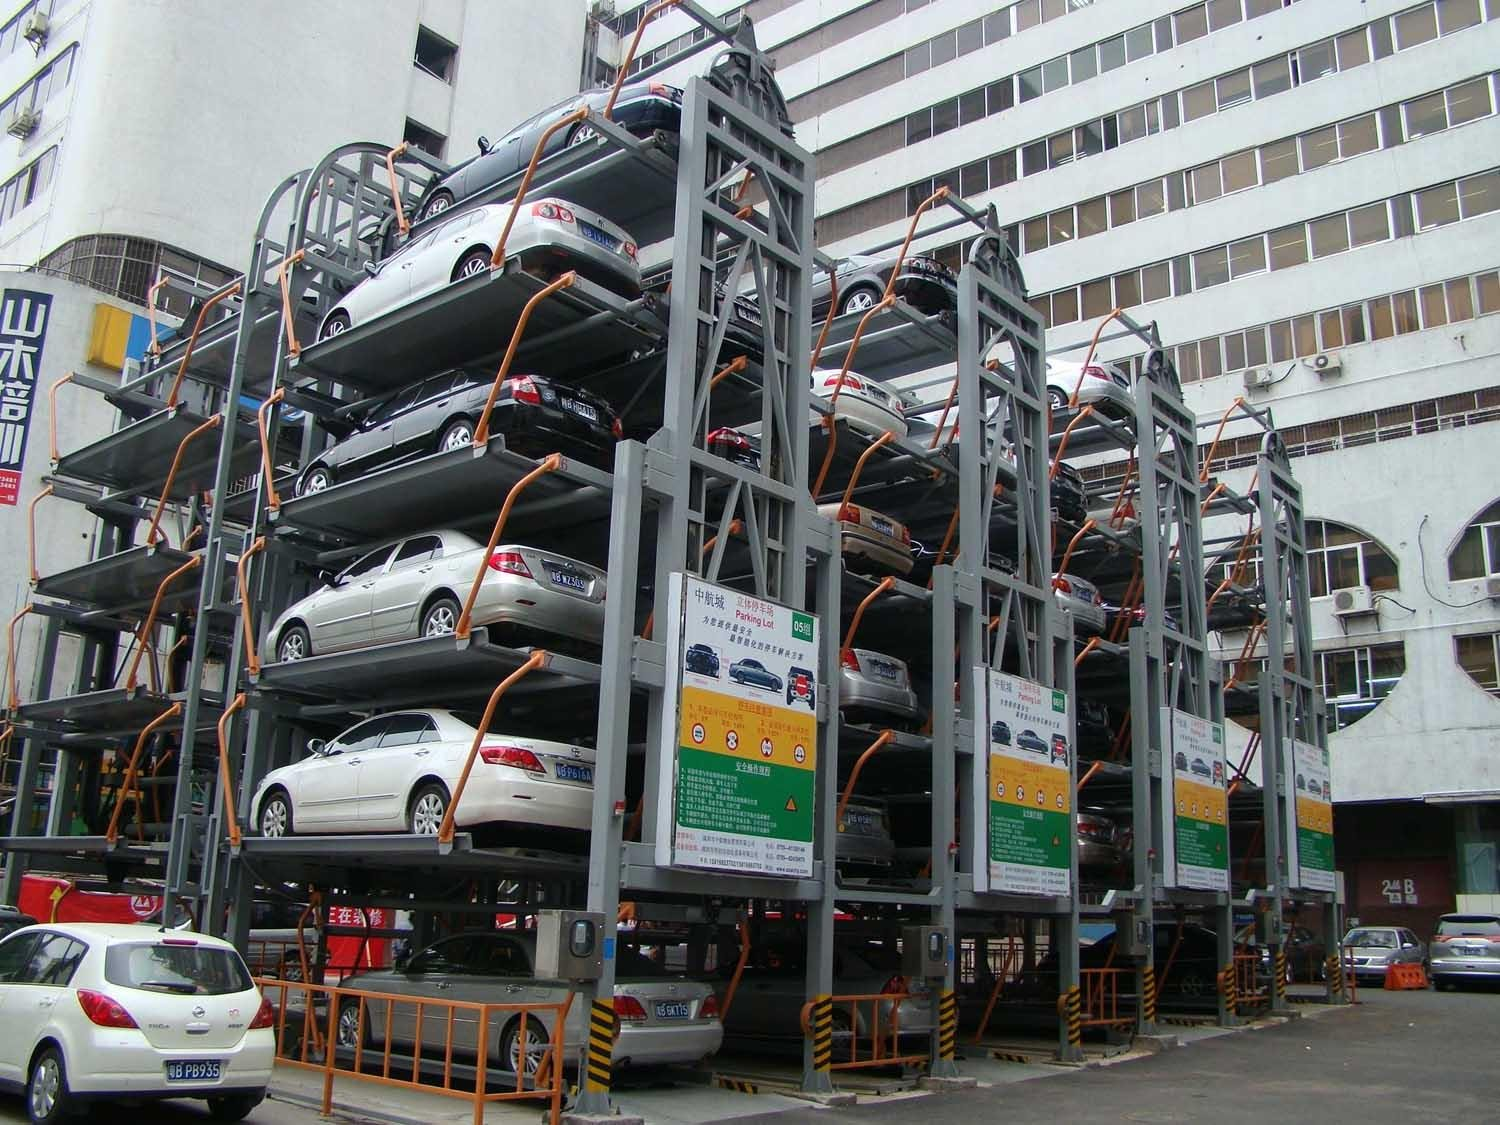 In the next few years, the market size of mechanical parking equipment will continue to increase at a rate of about 20%